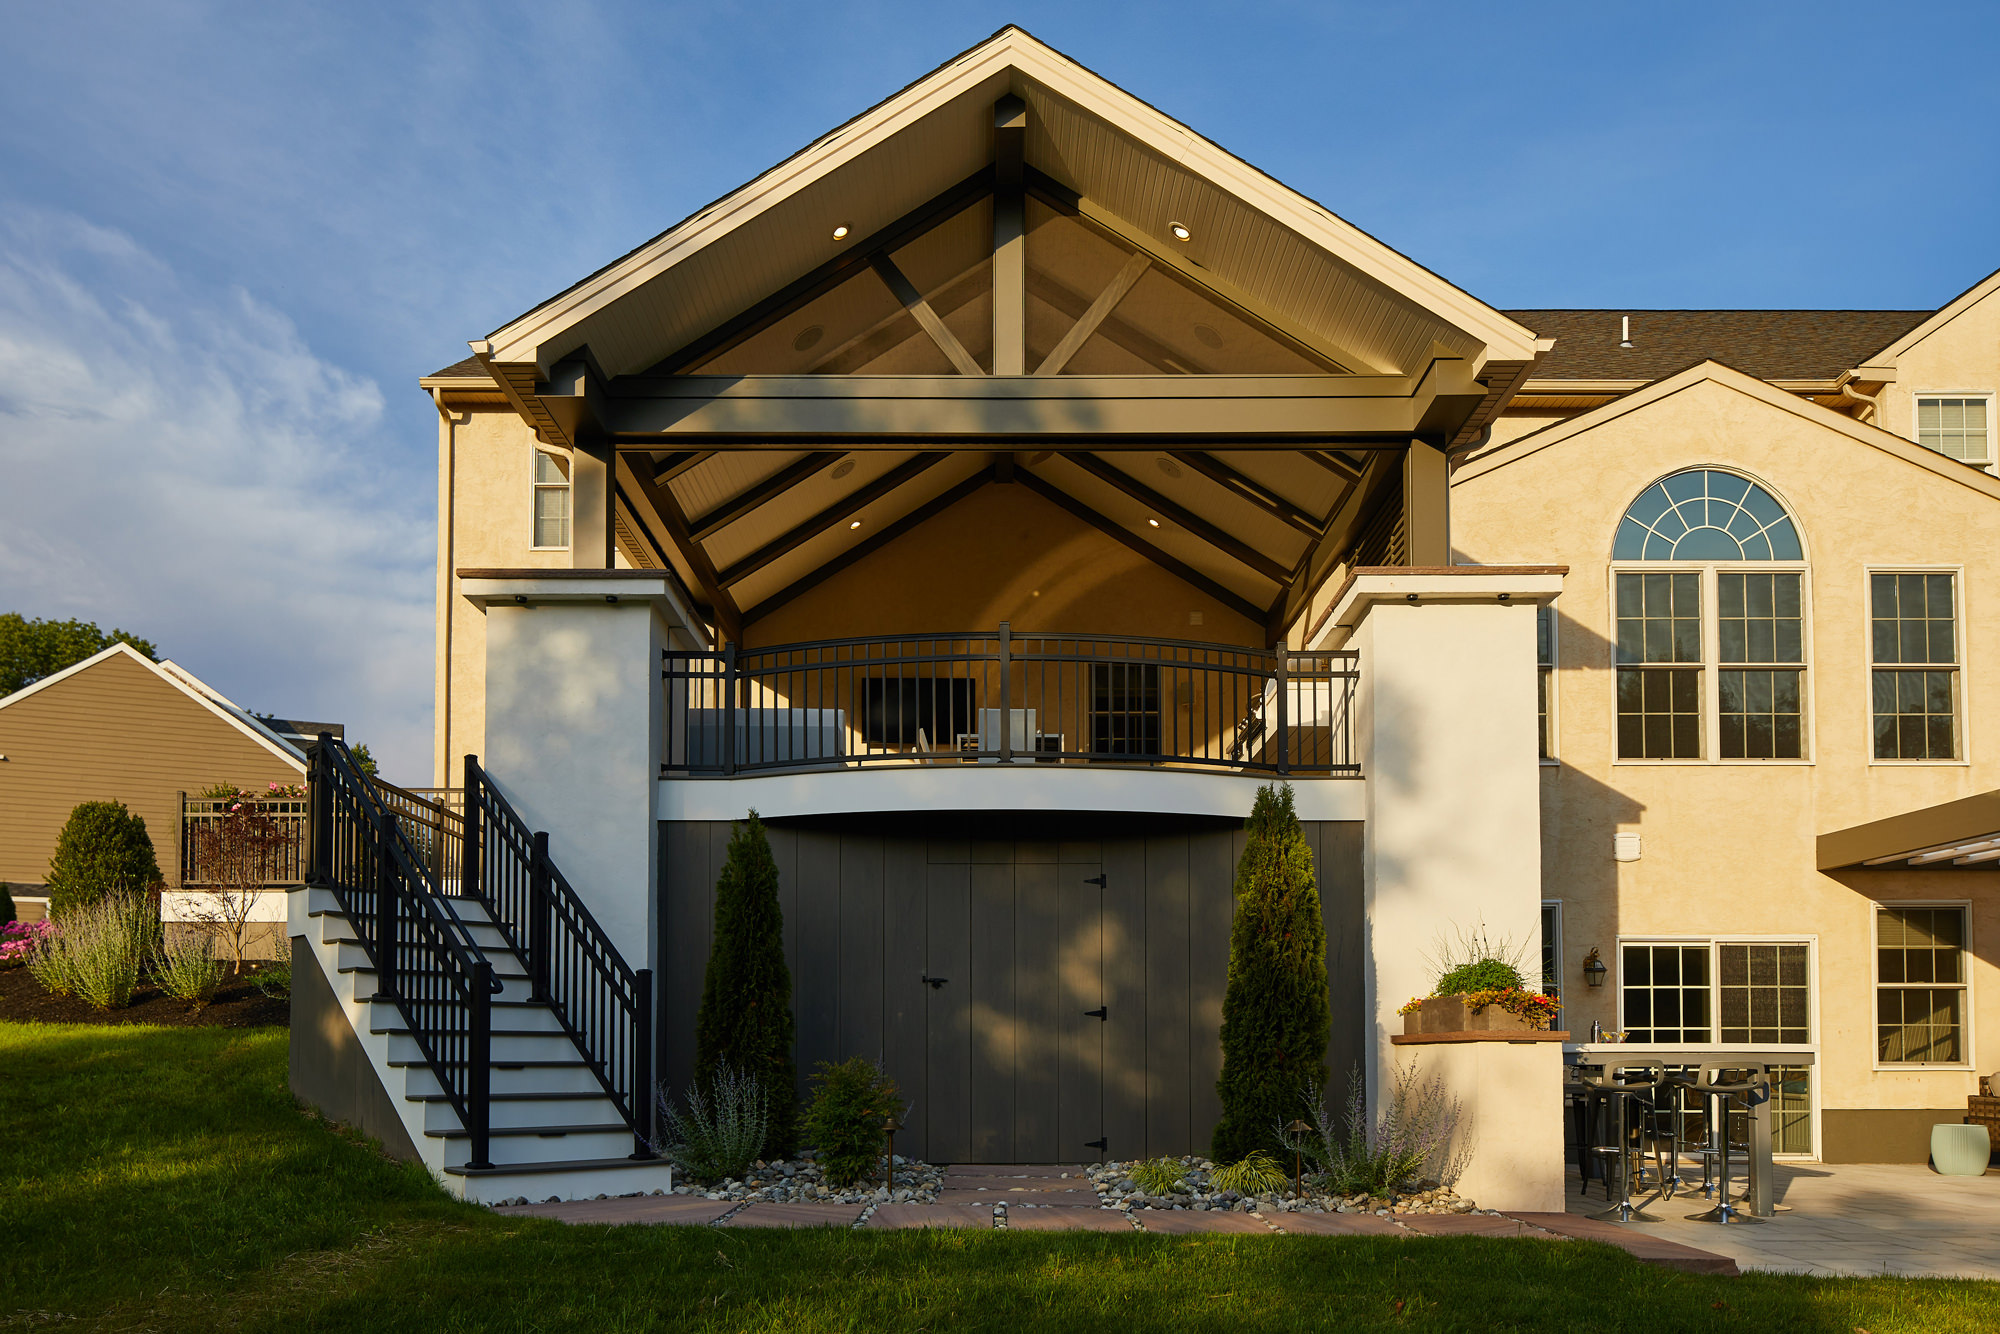 Fitch Residence « MasterPLAN Outdoor Living on Masterplan Outdoor Living id=97216